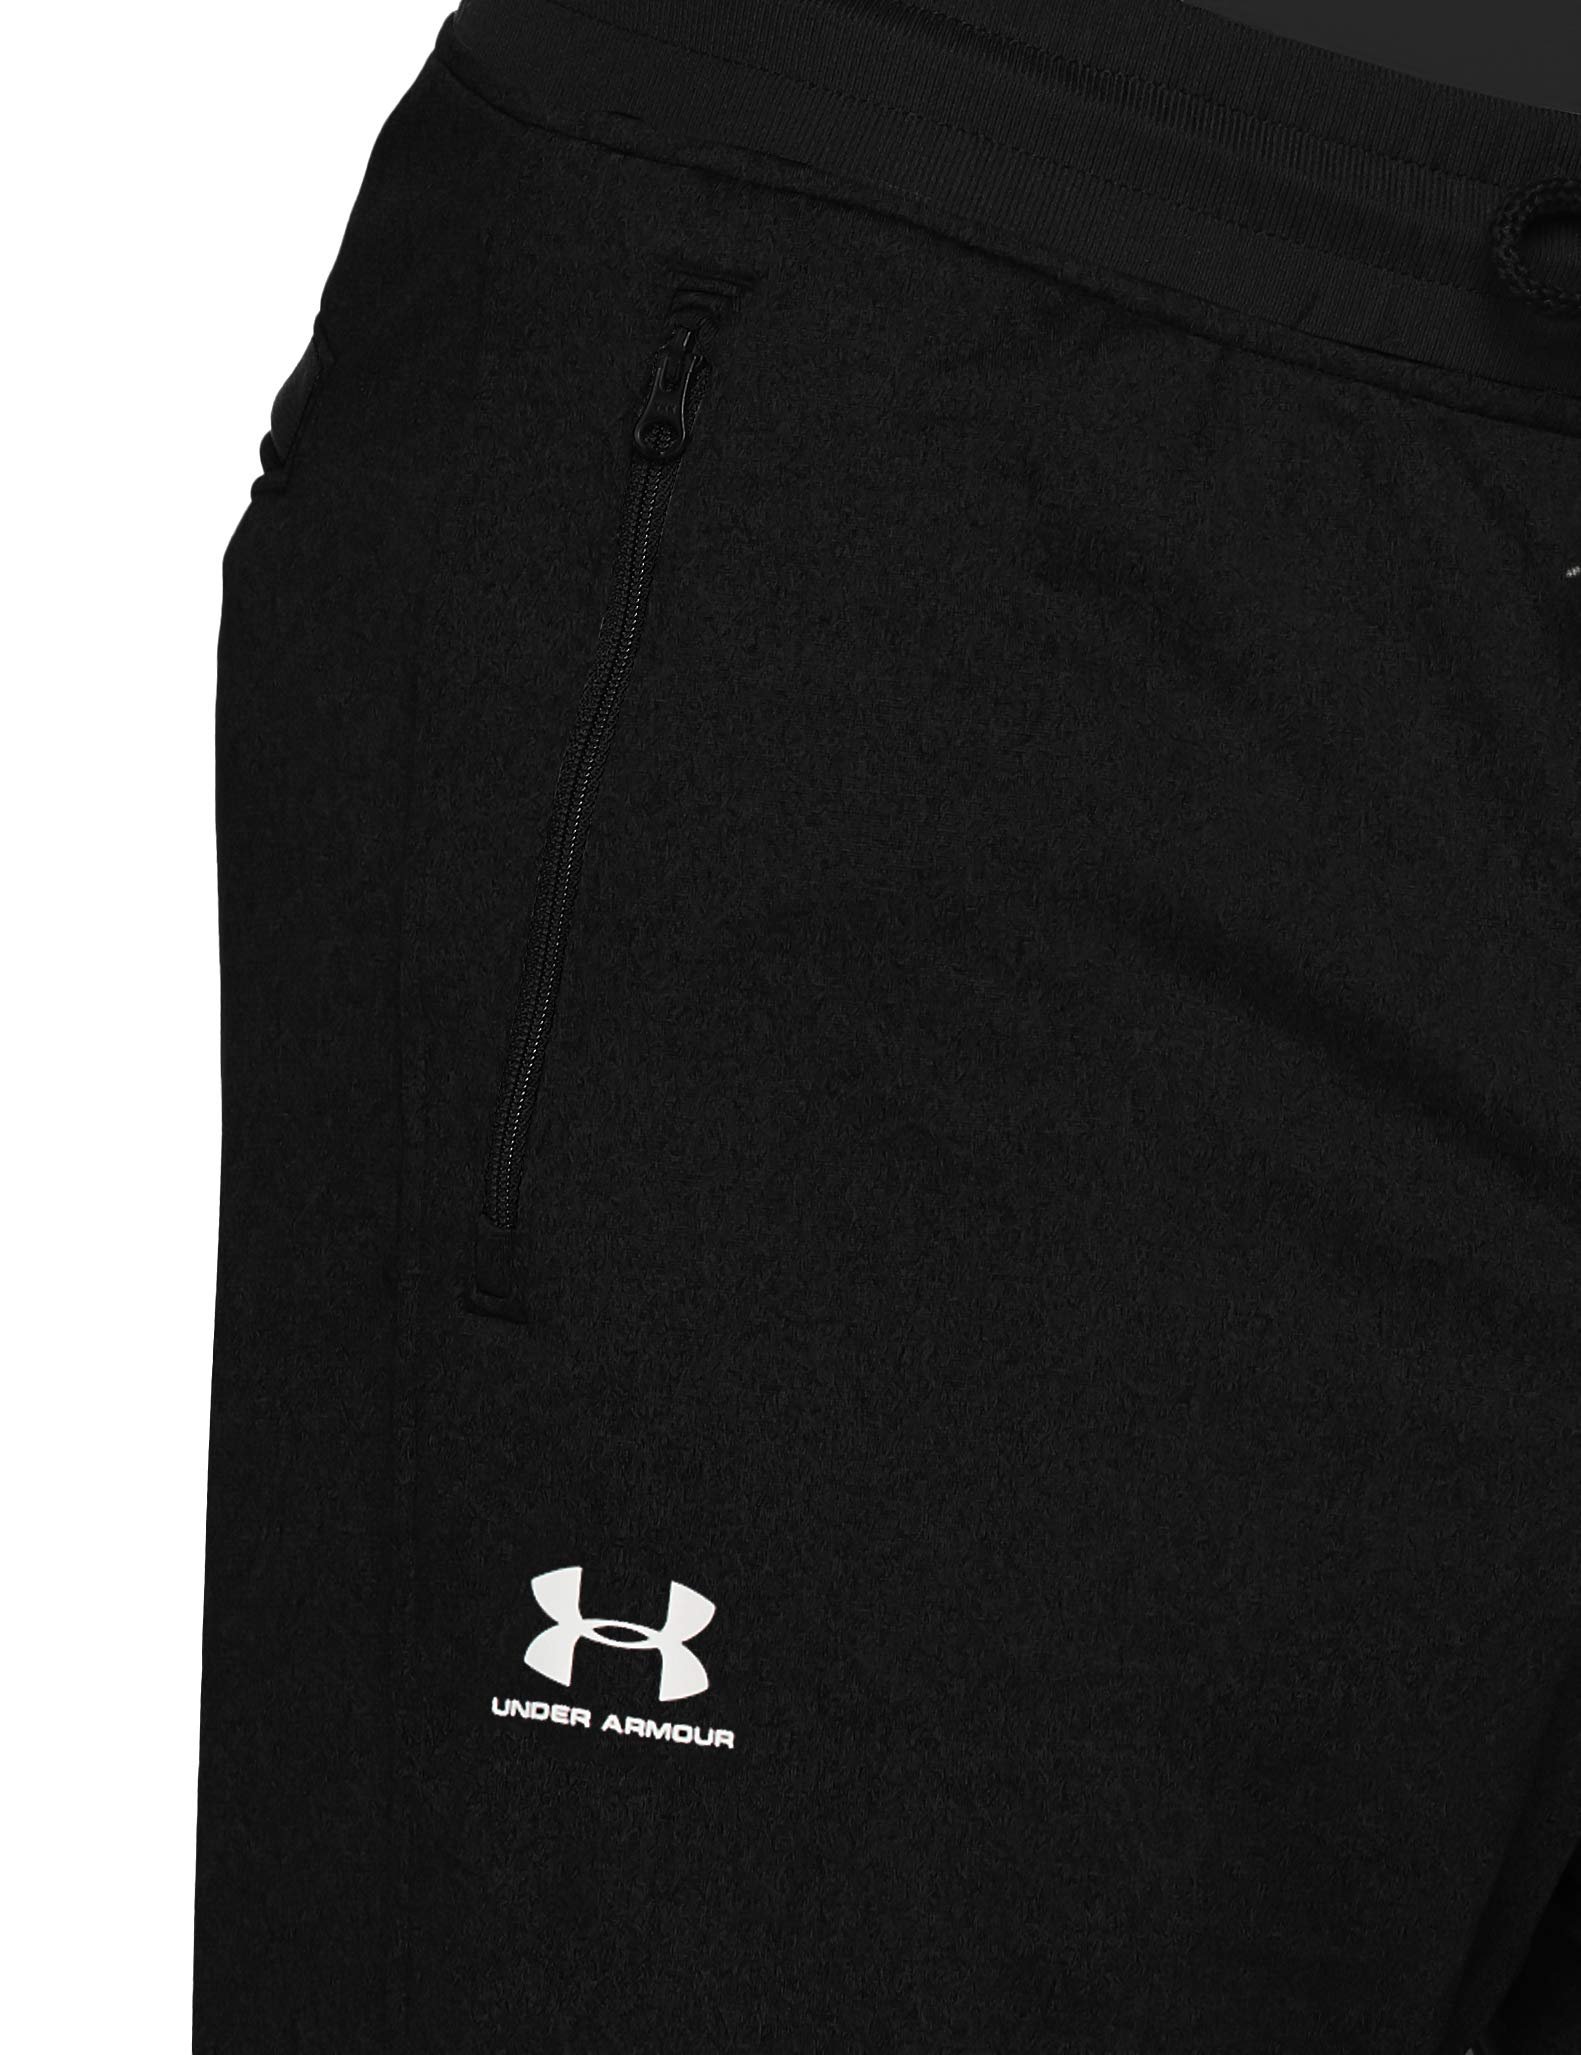 Under Armour Men's Sportstyle Jogger Pants, Black /White, XXX-Large Tall by Under Armour (Image #6)